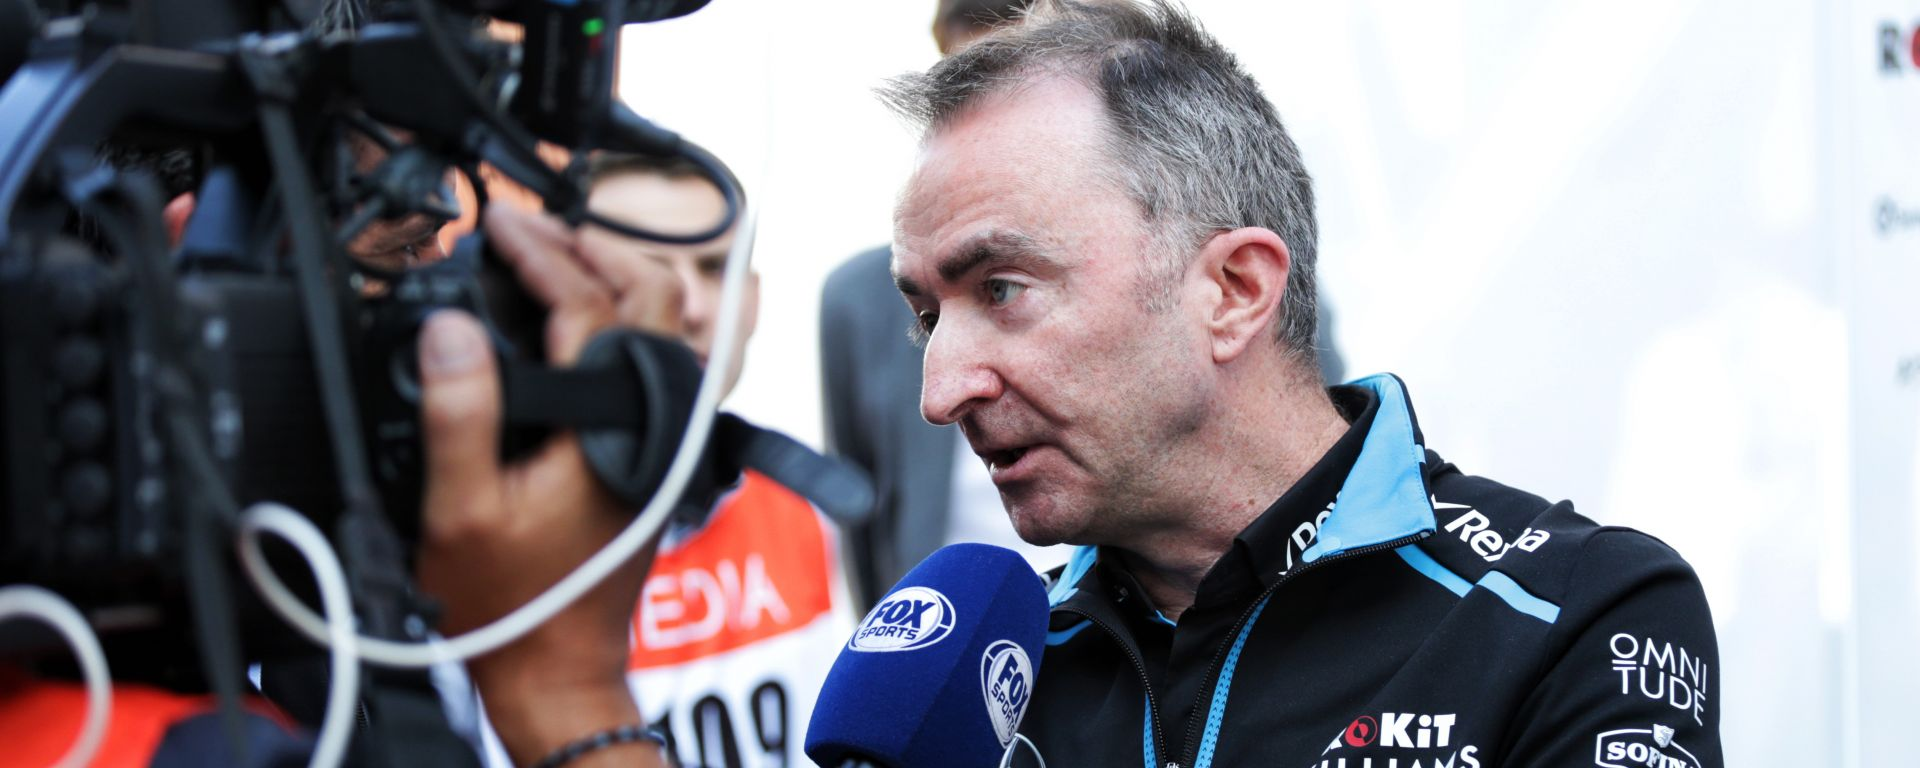 Paddy Lowe con la maglia Williams F1 nei test di Barcellona